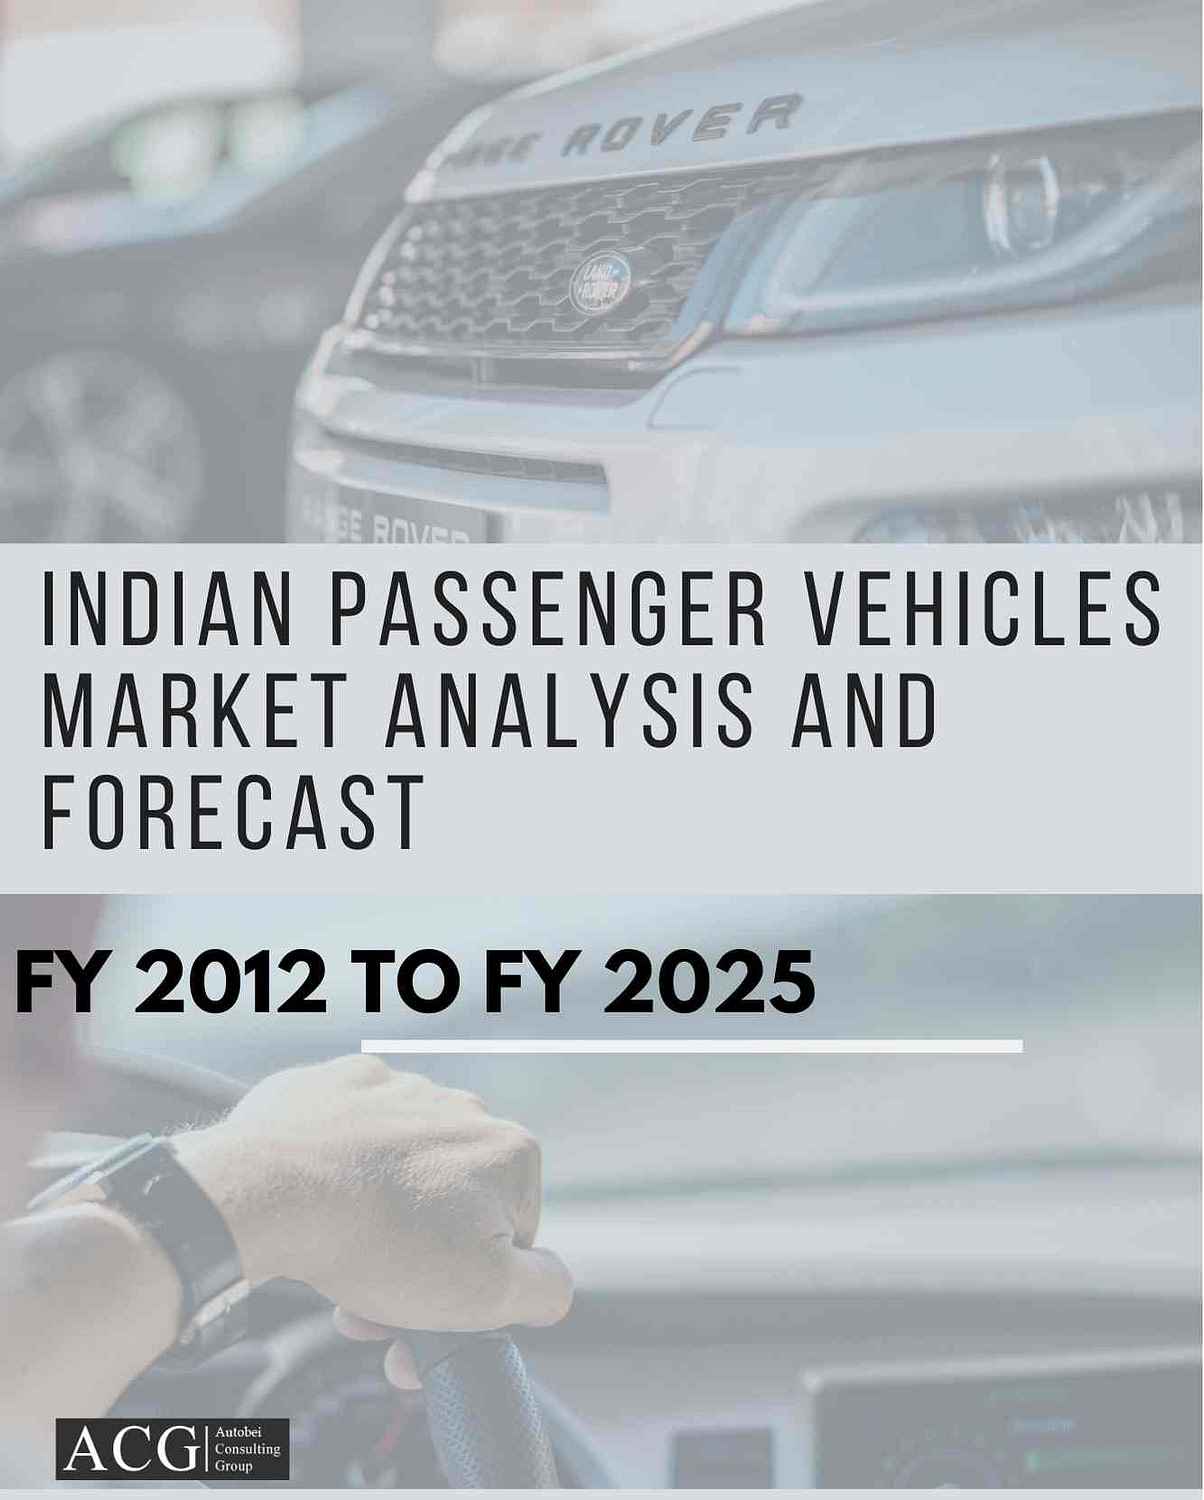 The Future of India's Passenger Vehicle Market